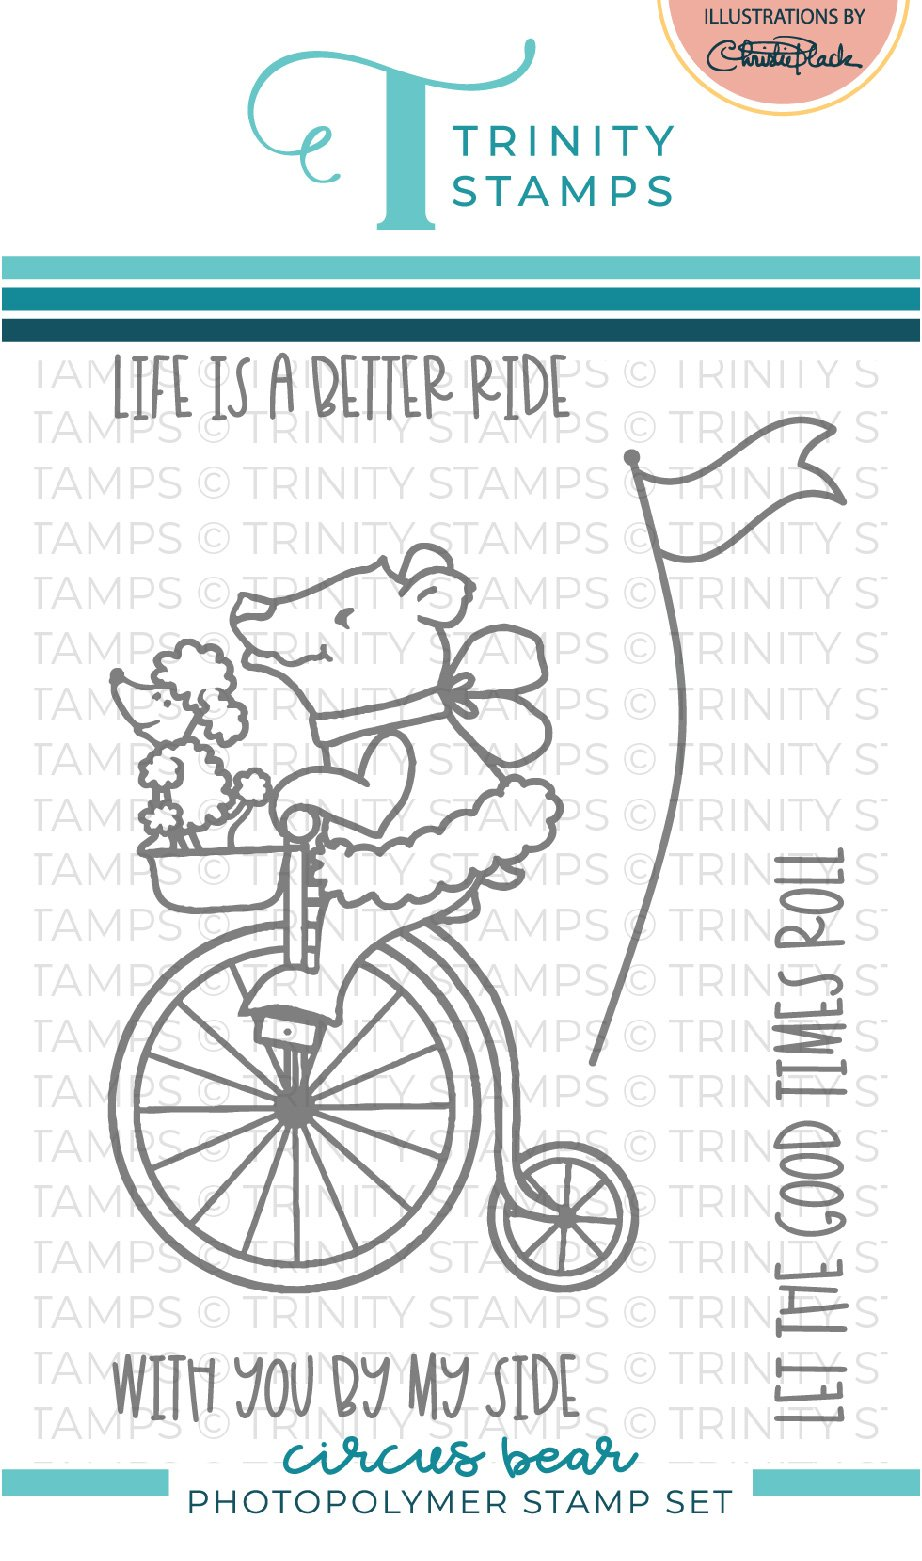 *NEW* - Trinity Stamps - Circus Bear 3x4 Stamp Set